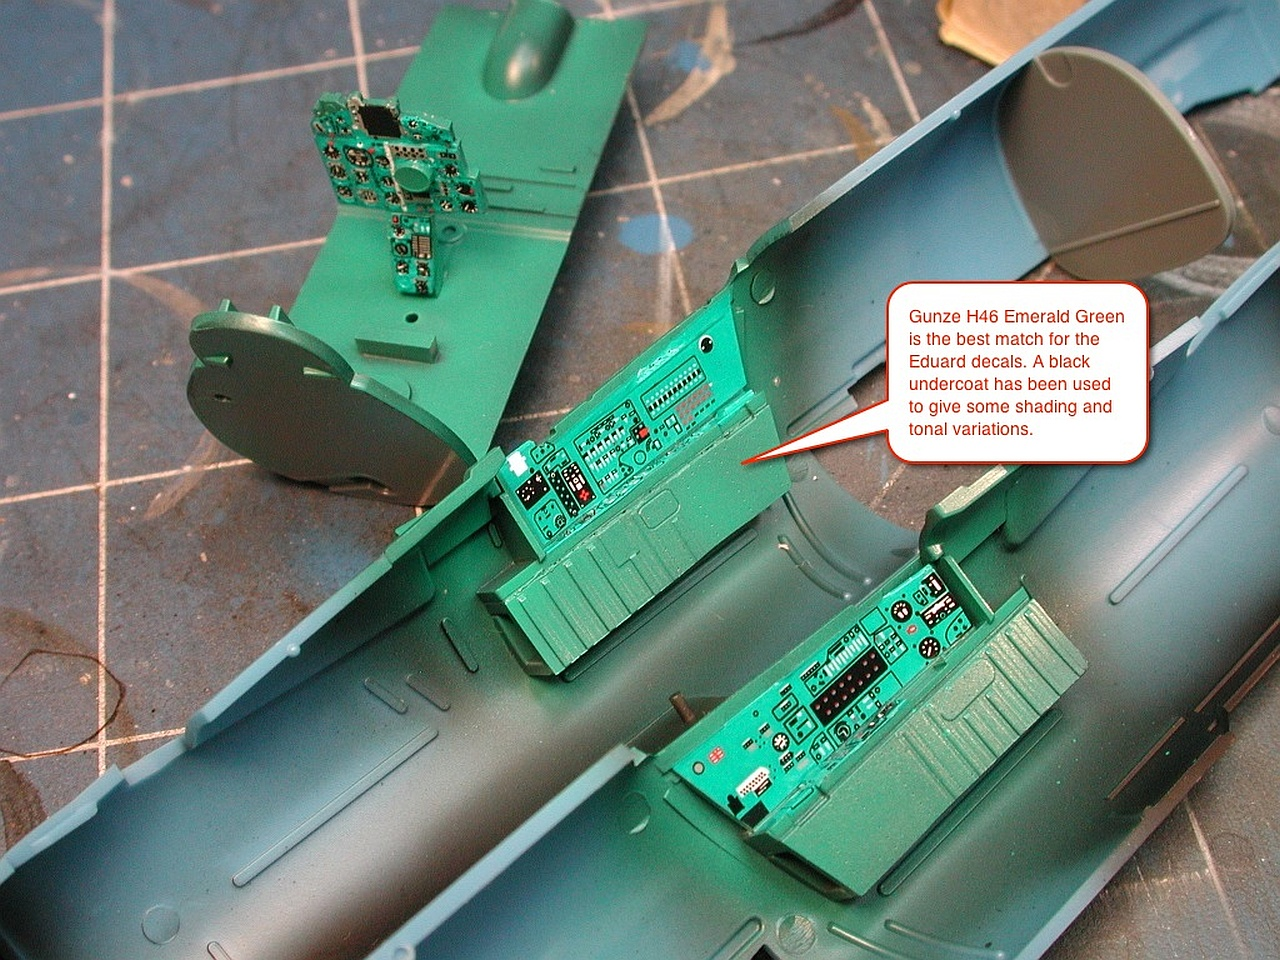 scalespot com - On The Bench - Eduard MiG-21MF Bunny Fighter